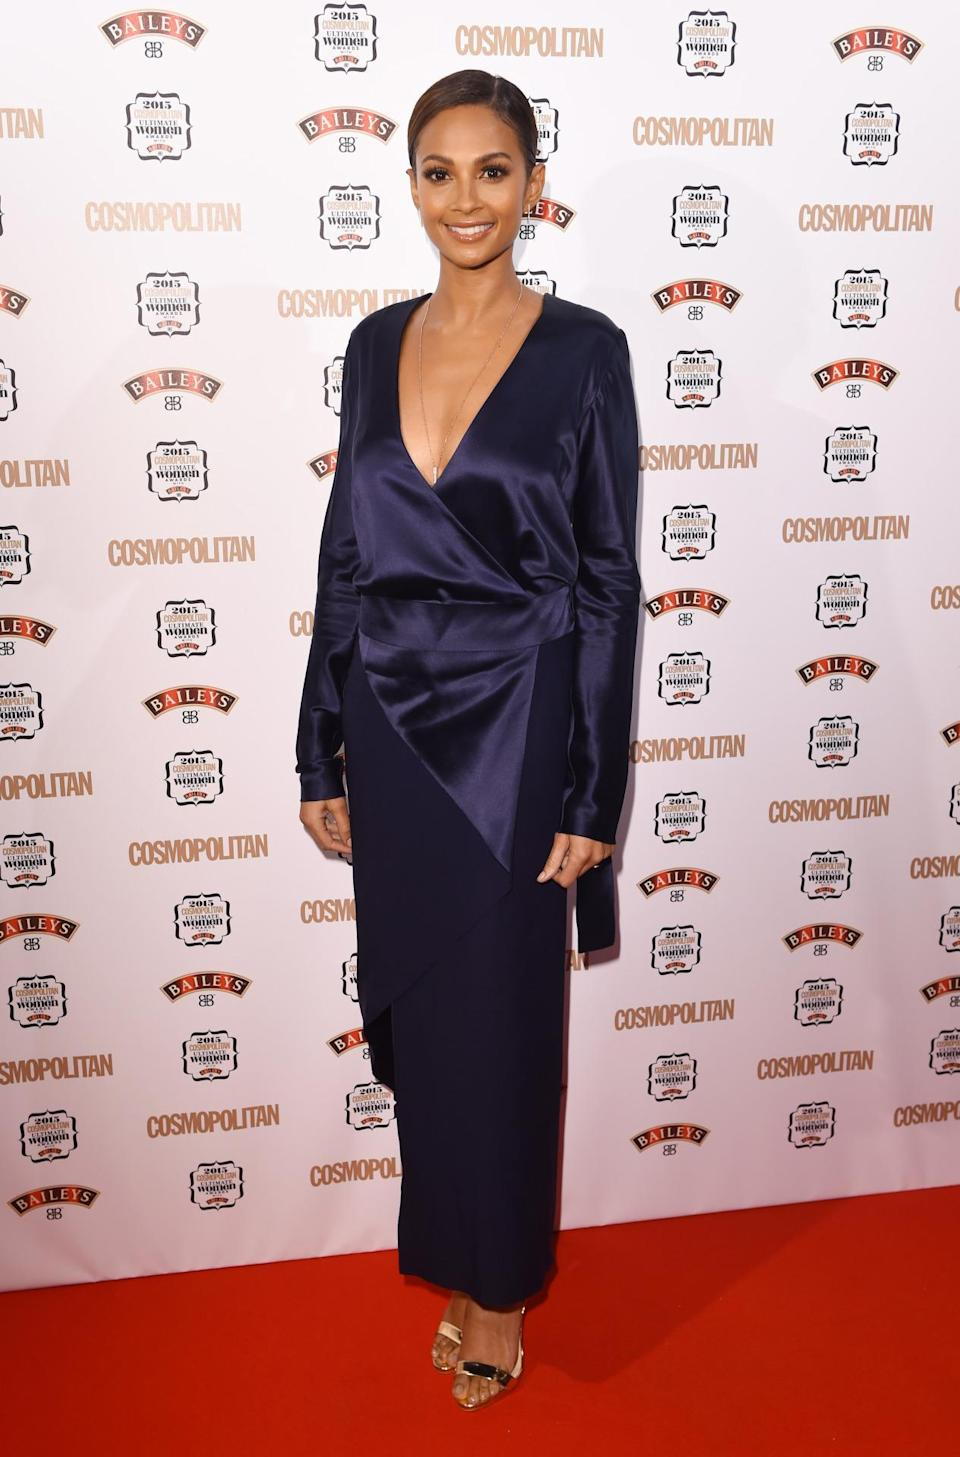 Alesha Dixon opted for a satin wrap dress with a plunging neckline and slicked her locks back. [Photo: Rex]